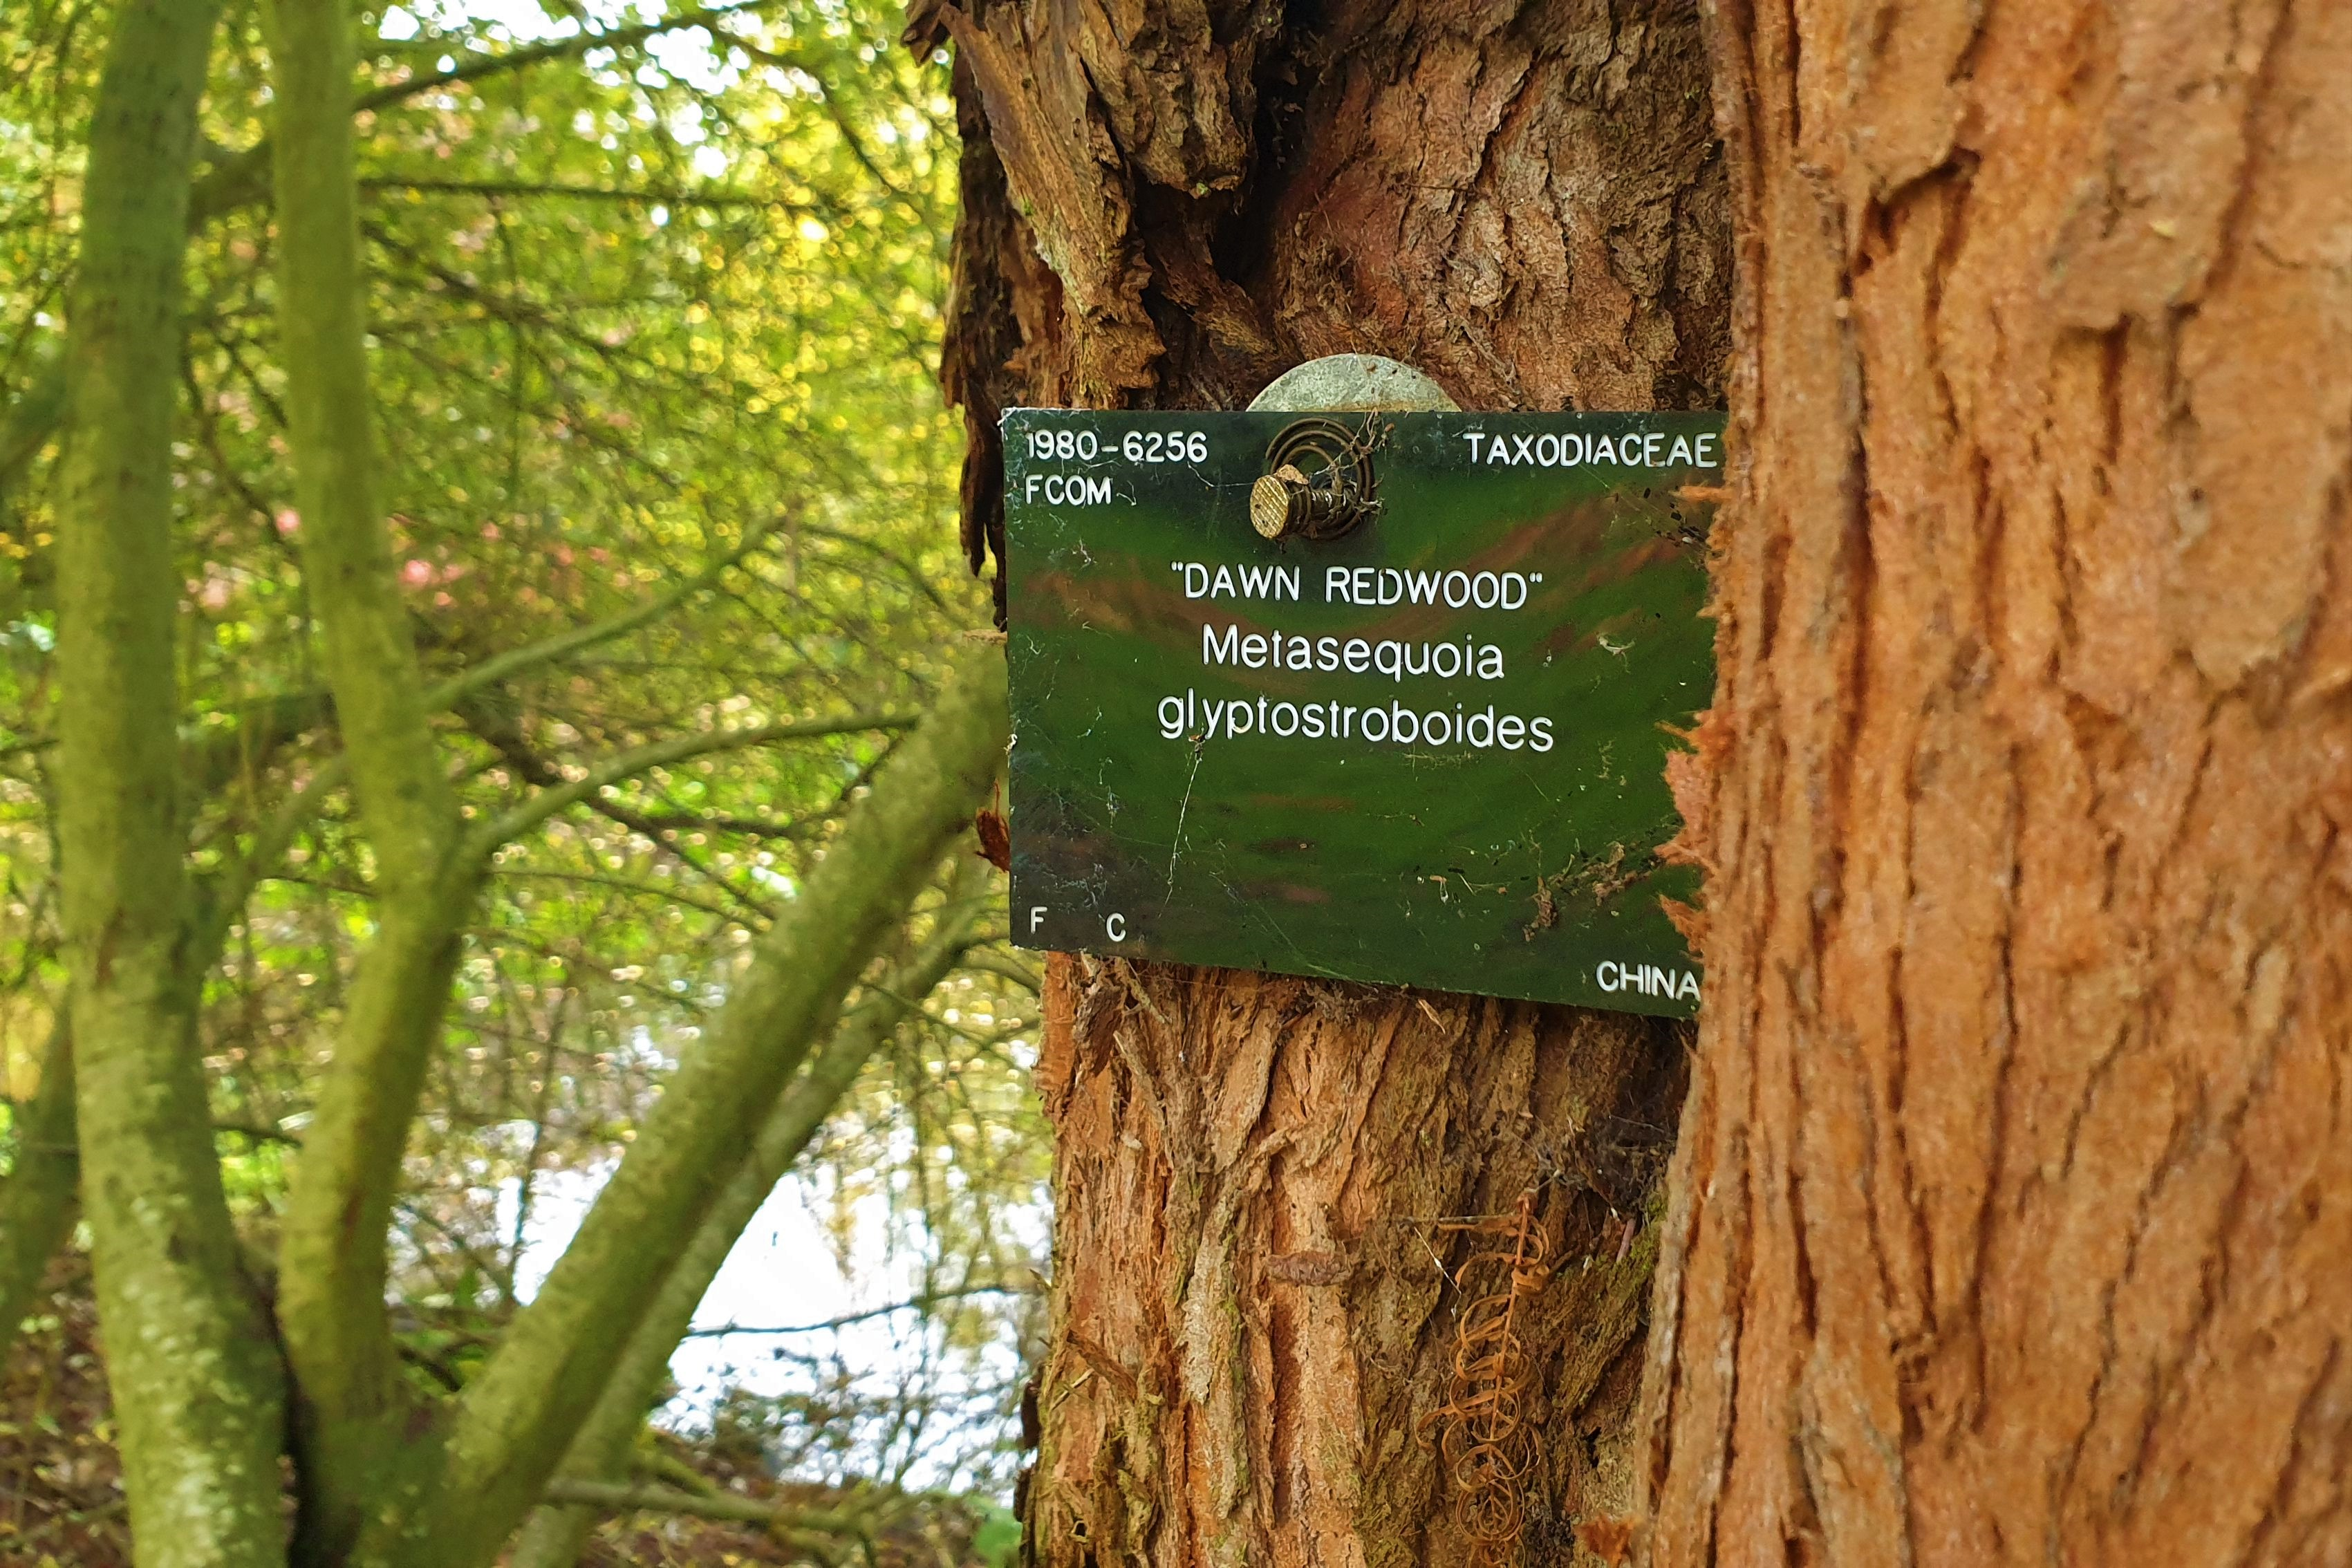 Close up of dawn redwood (Metasequoia glyptostroboides) label